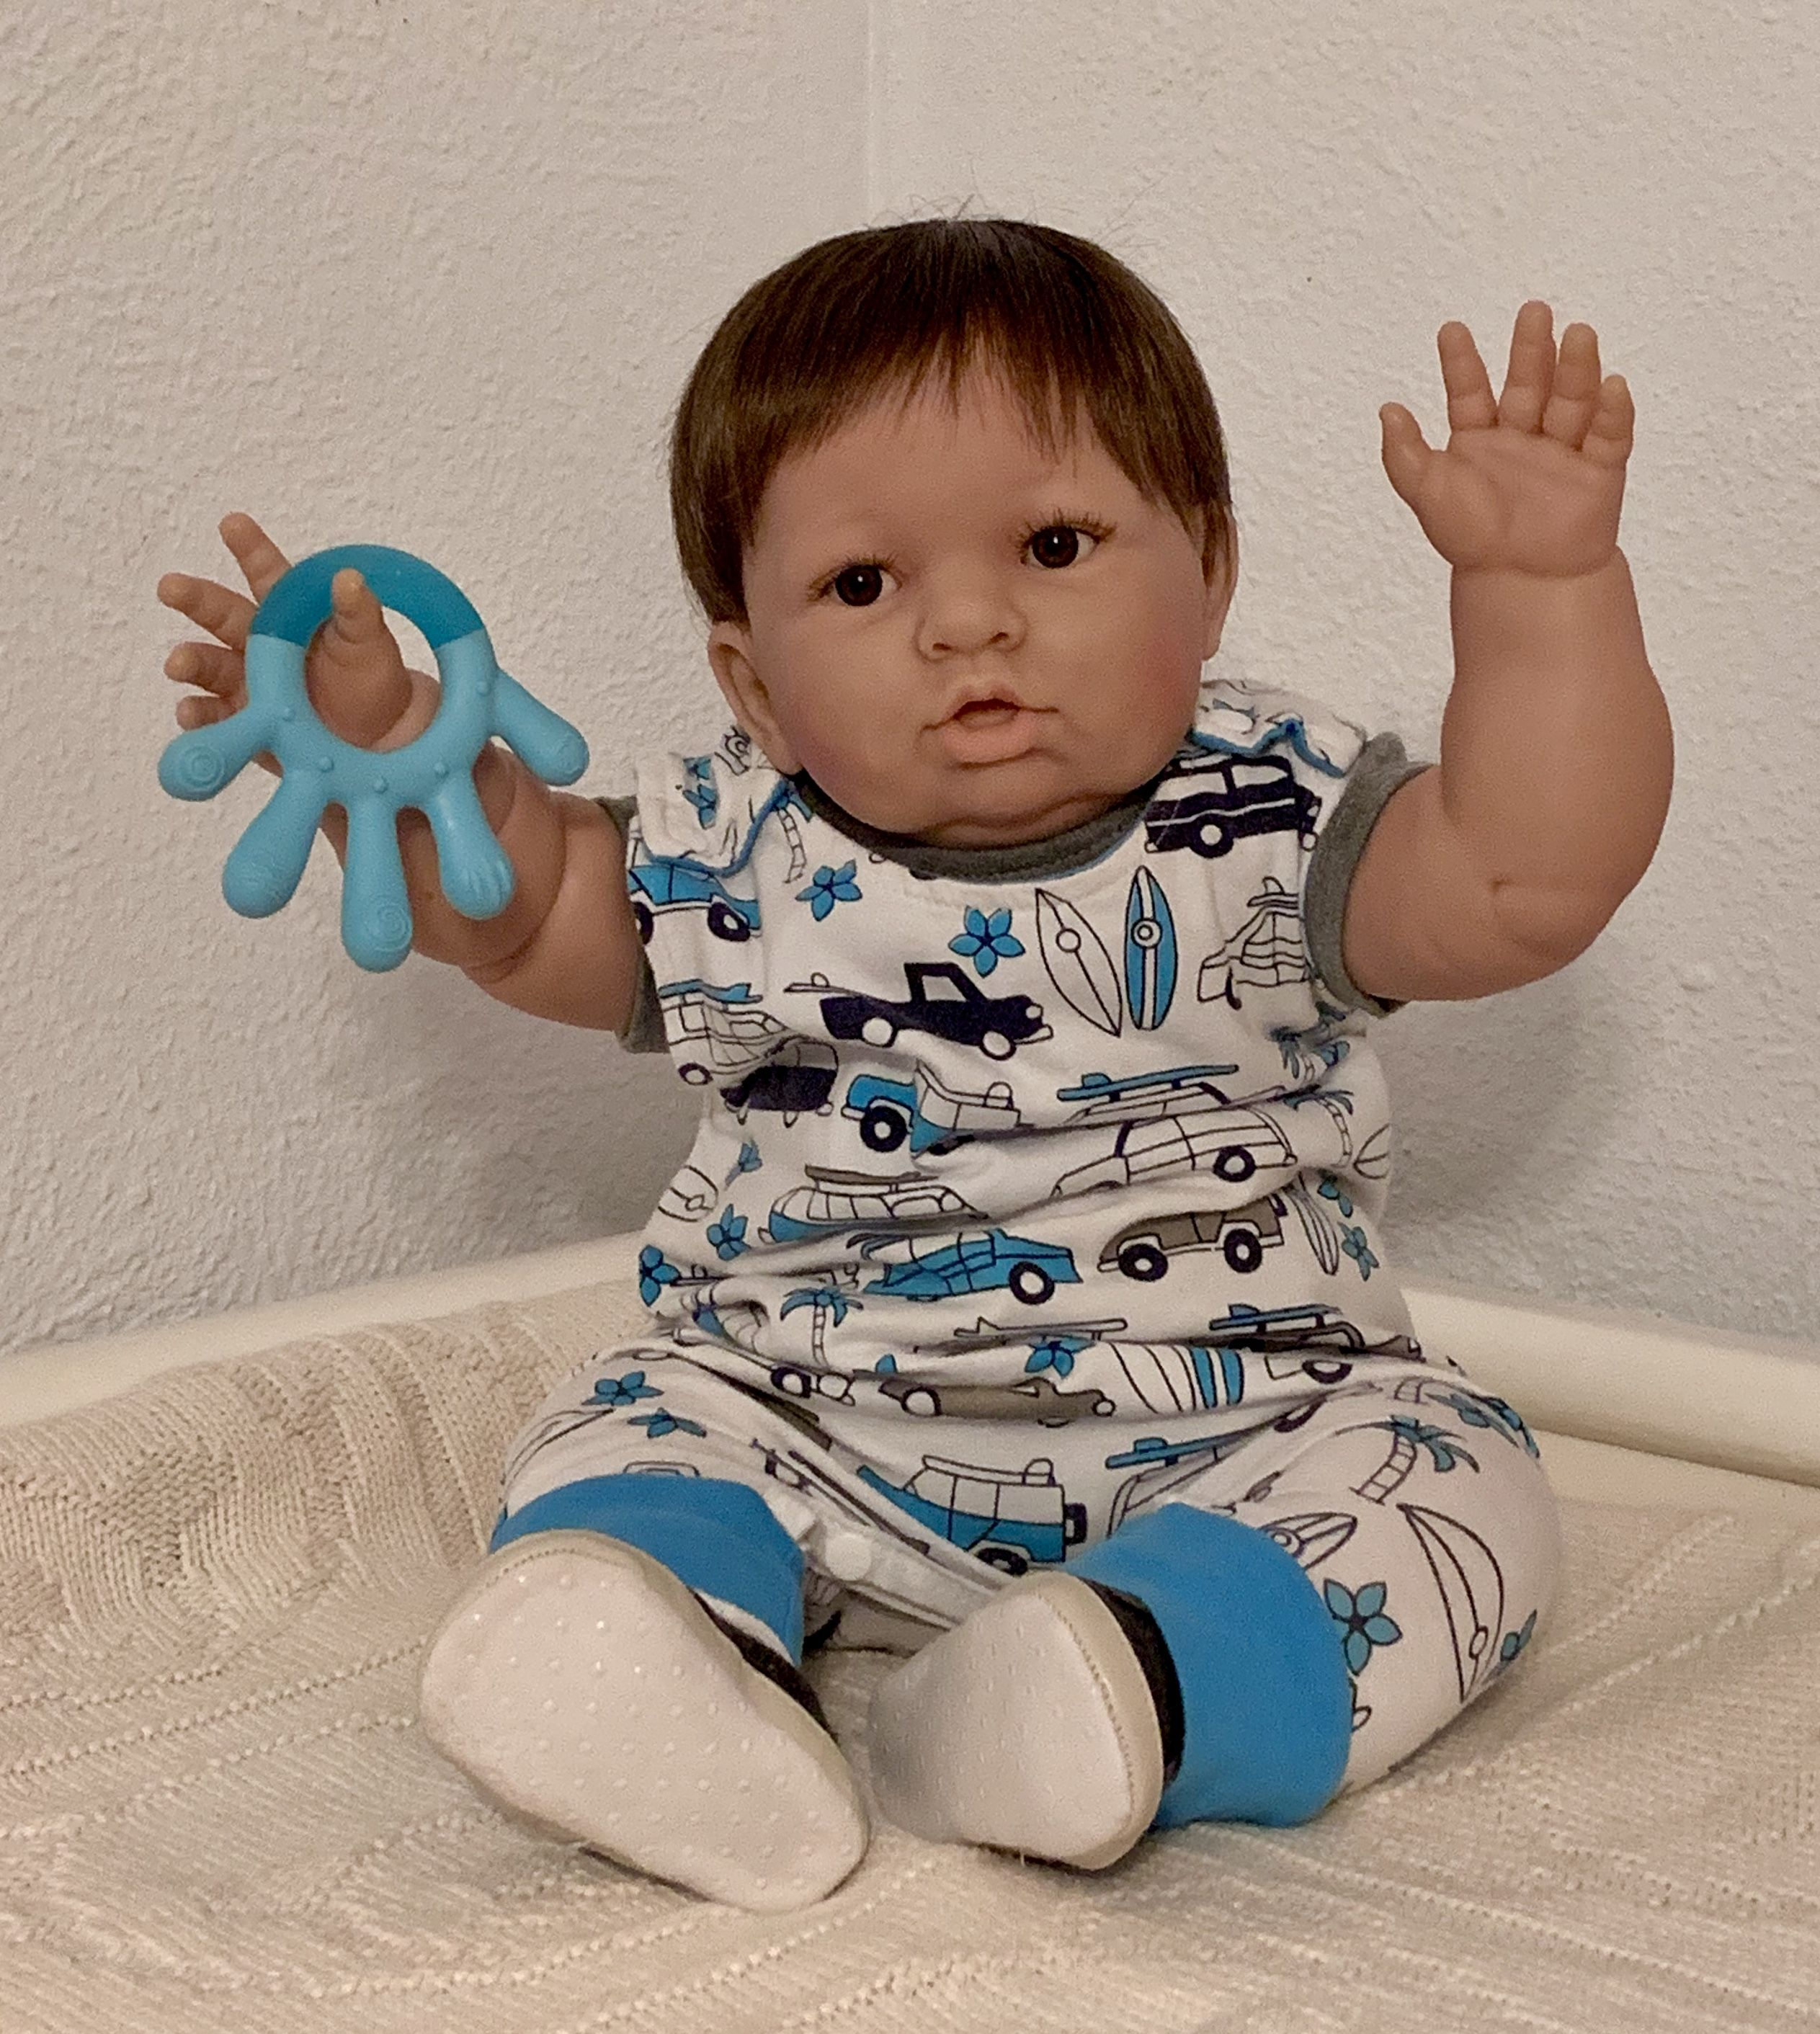 Pin by Baby Cakes on Realistic doll Reborn babies